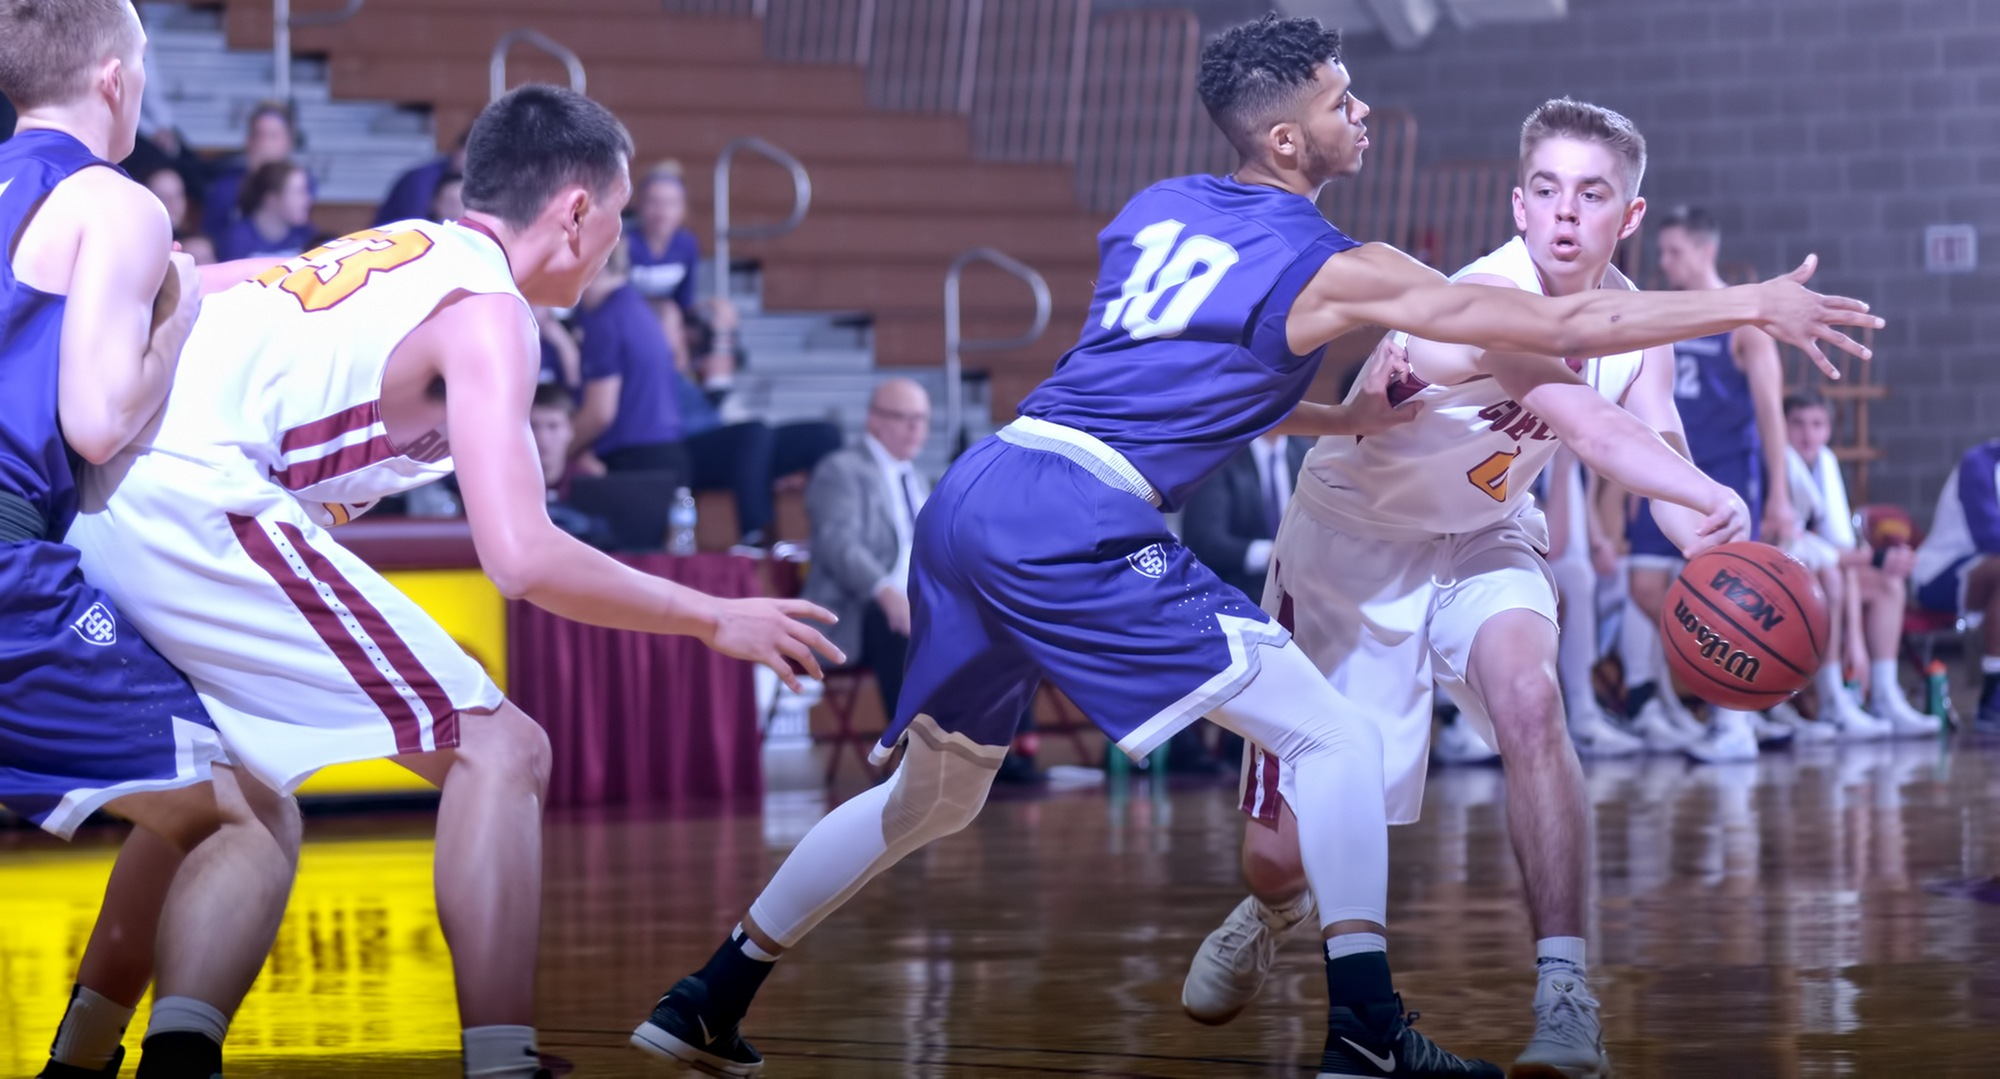 Sophomore Hunter Larson reaches around to make an entry pass to teammate Jordan Davis during the second half of the Cobbers' game vs. St. Thomas. (Photo courtesy of Greta Nye)